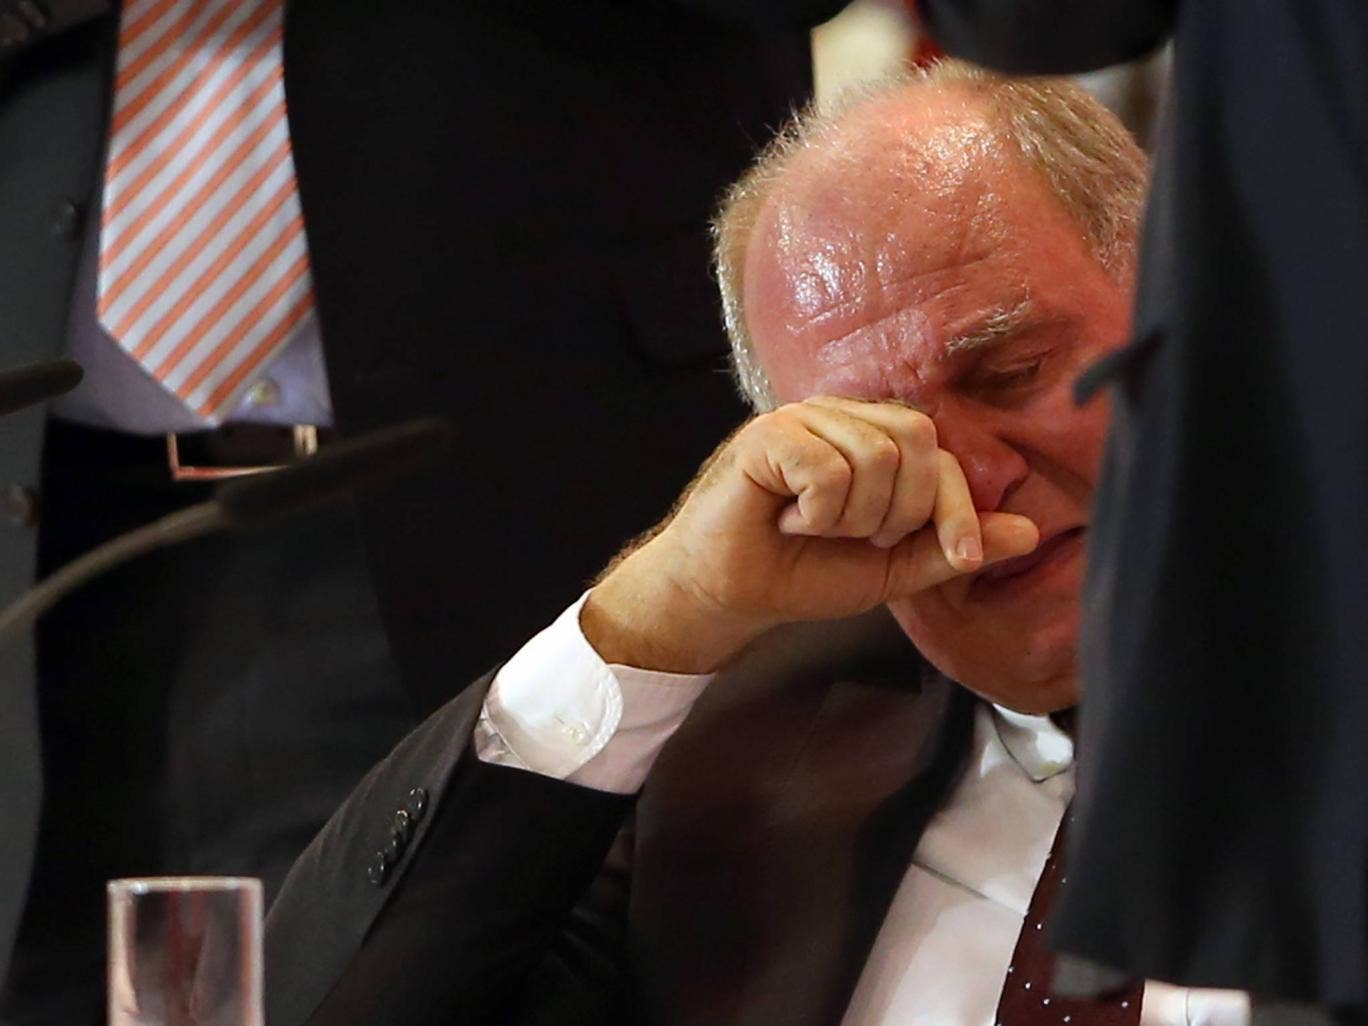 Bayern Munich president Uli Hoeness is reduced to tears at the club's annual general meeting